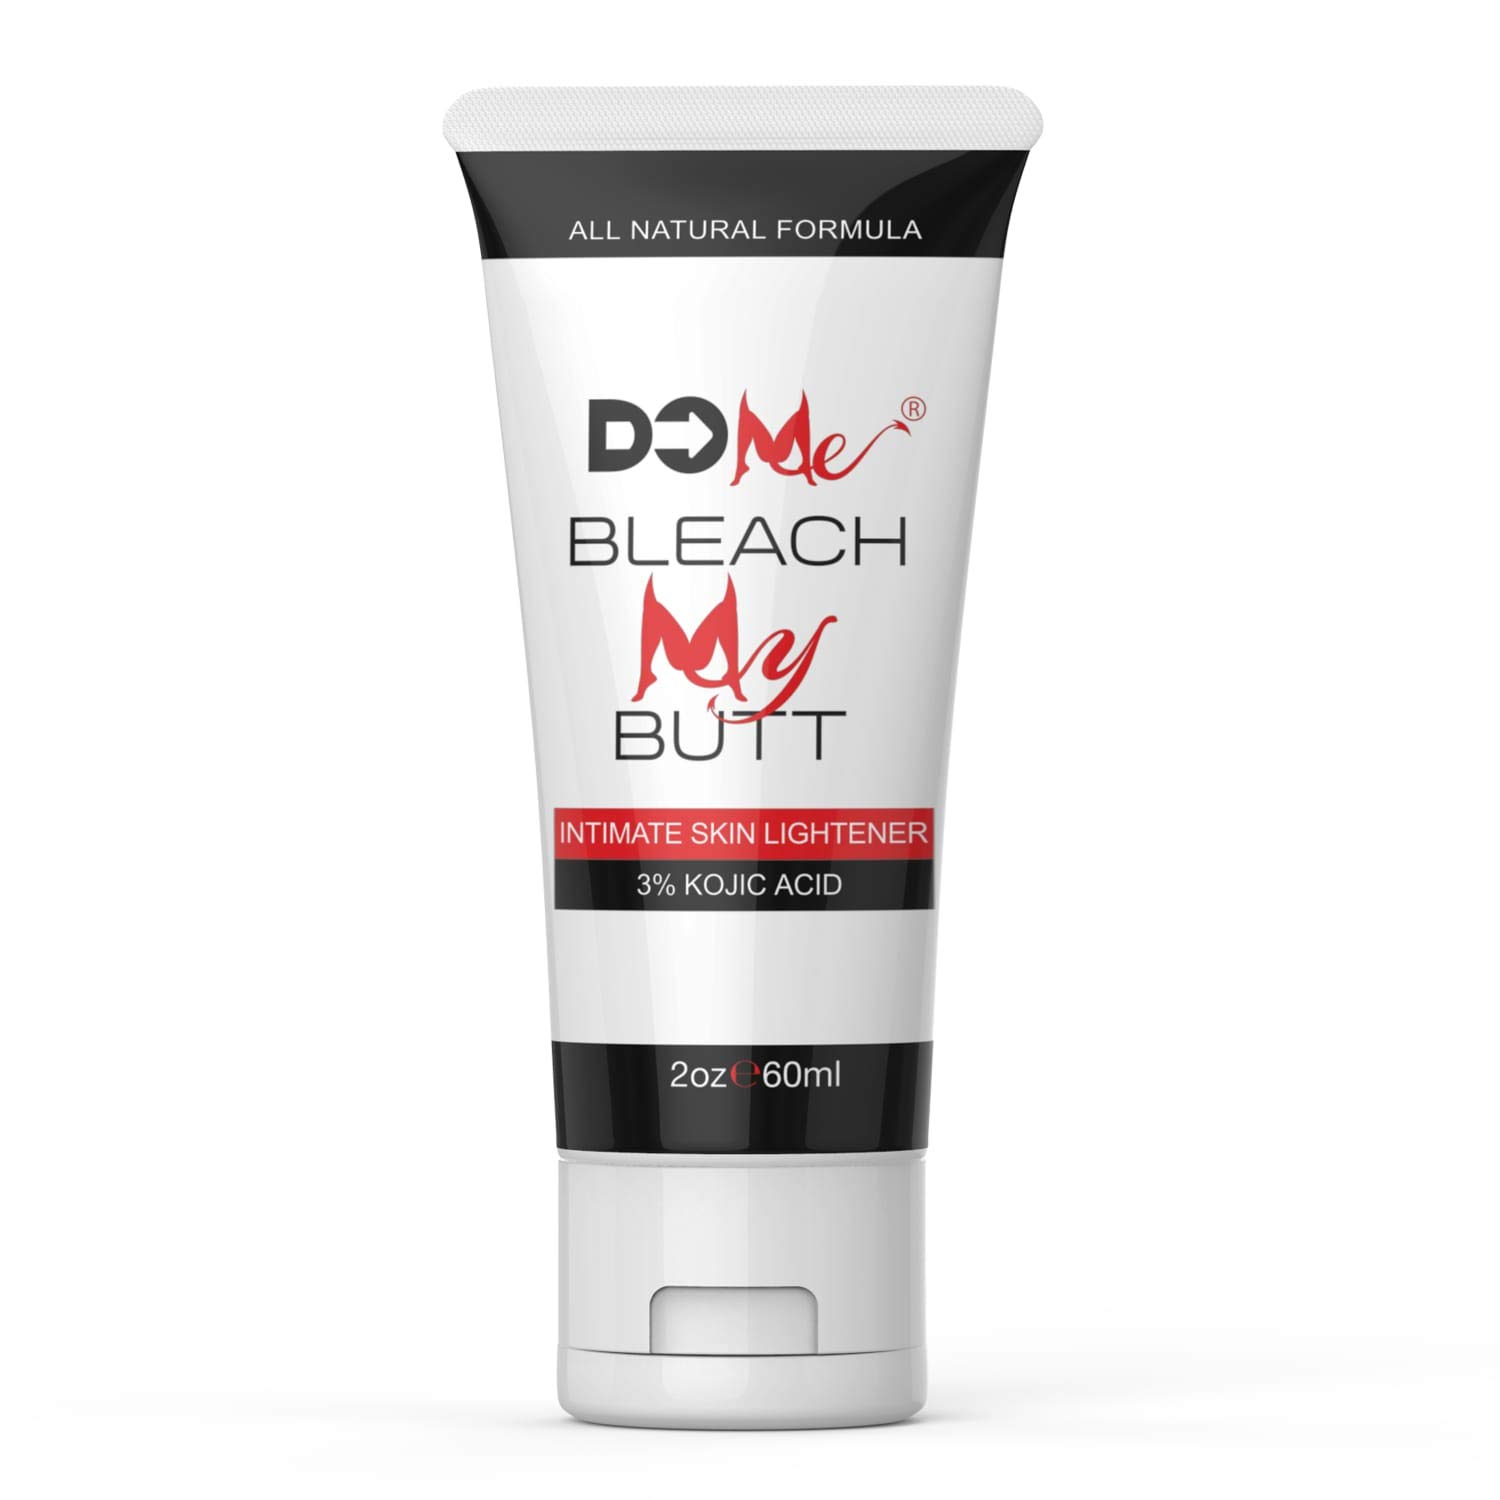 Premium Intimate Whitening Cream - Bleach My Butt - All Natural Formula to Pink Your Wink (2oz) (Bleach My Butt) by Do Me (Image #1)